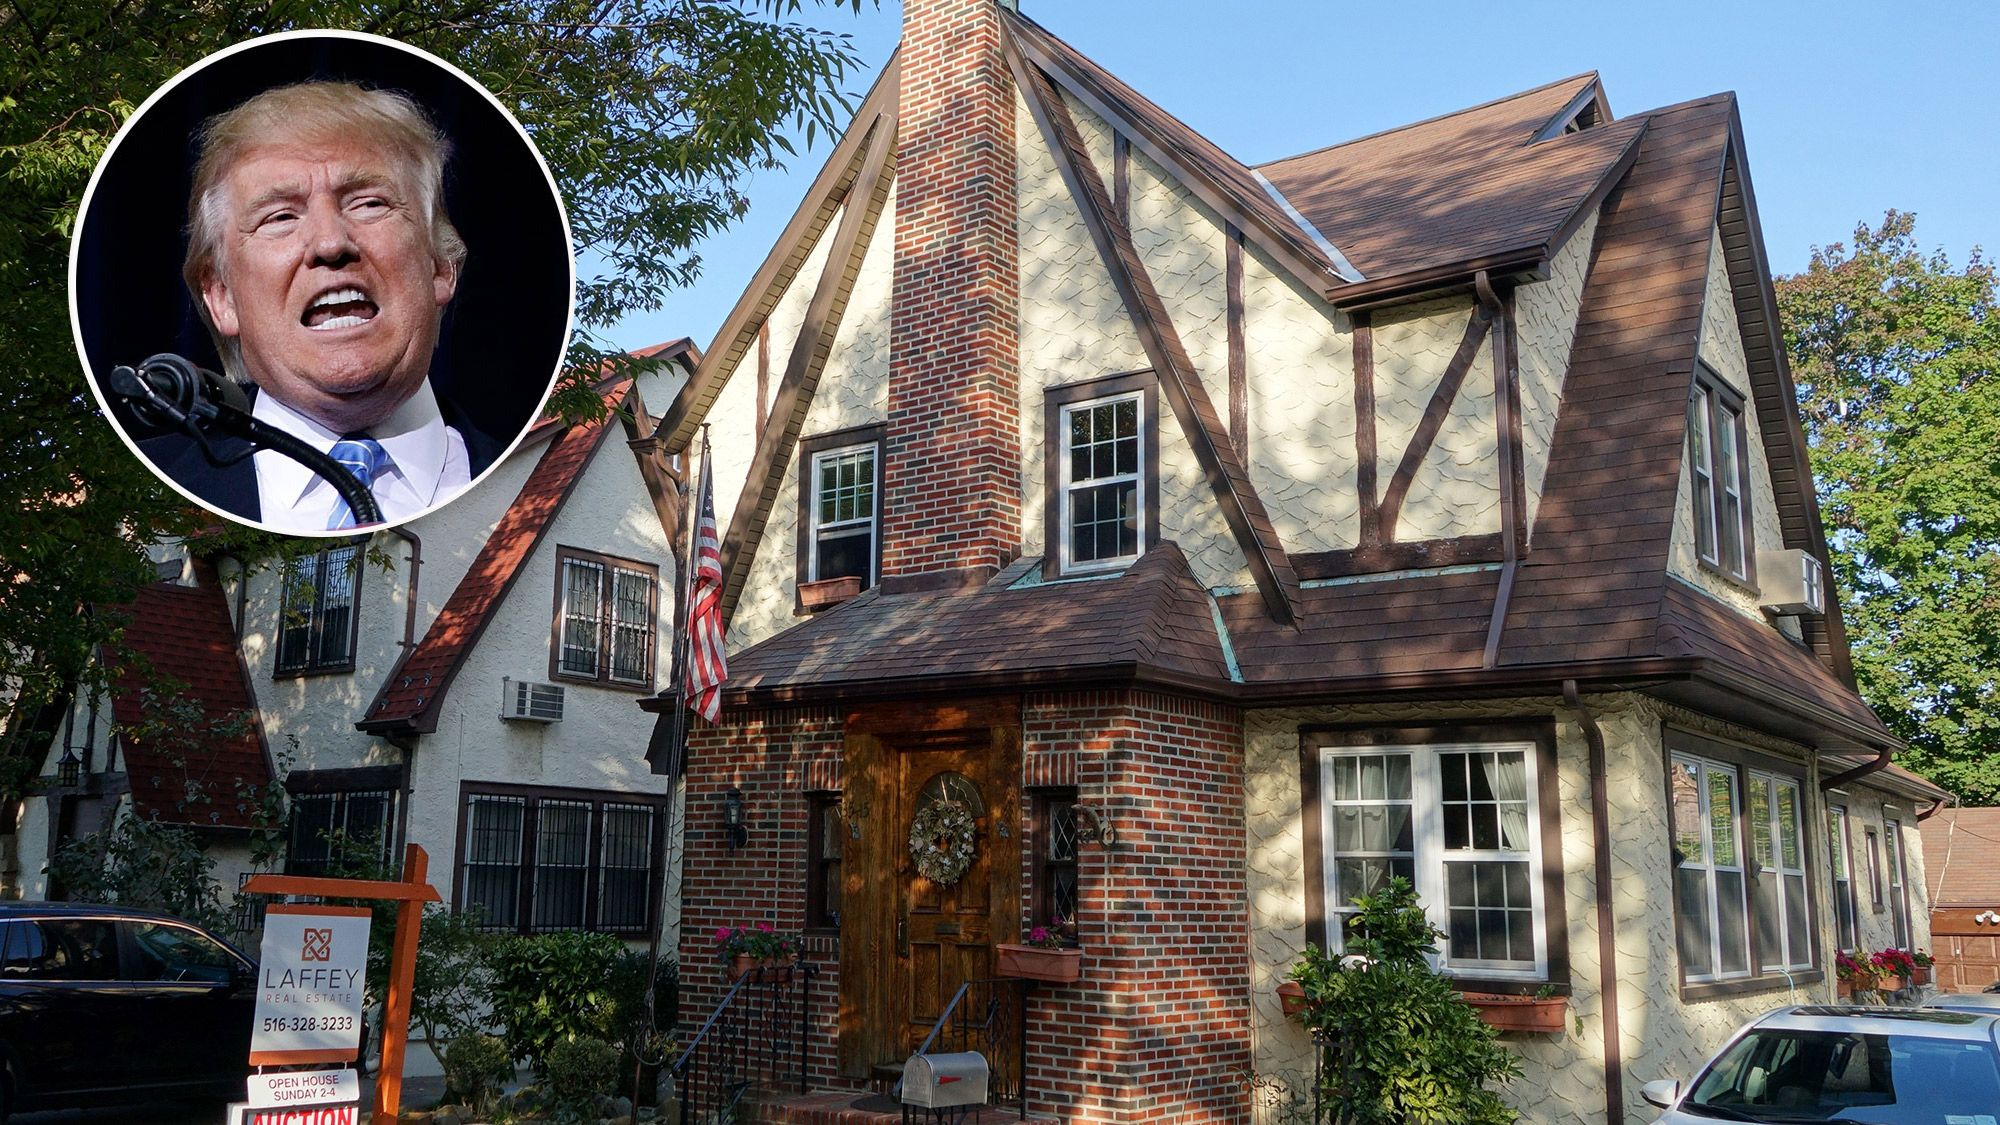 Donald Trump's Childhood Home Available for Rent